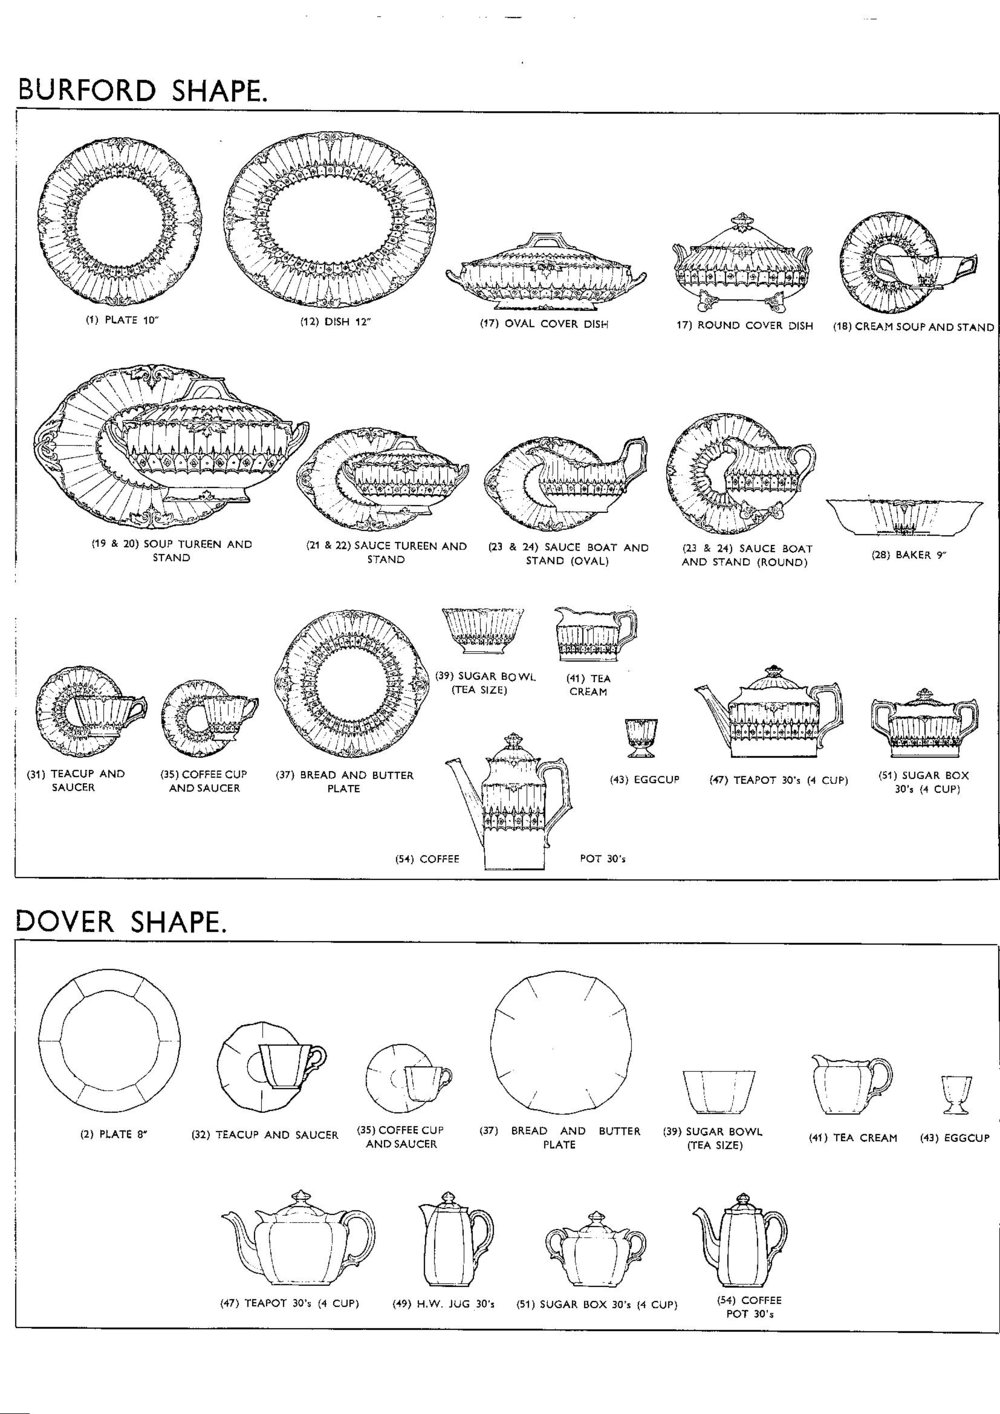 royal-crown-derby-outline-sketches-of-shapes-1955-page-5